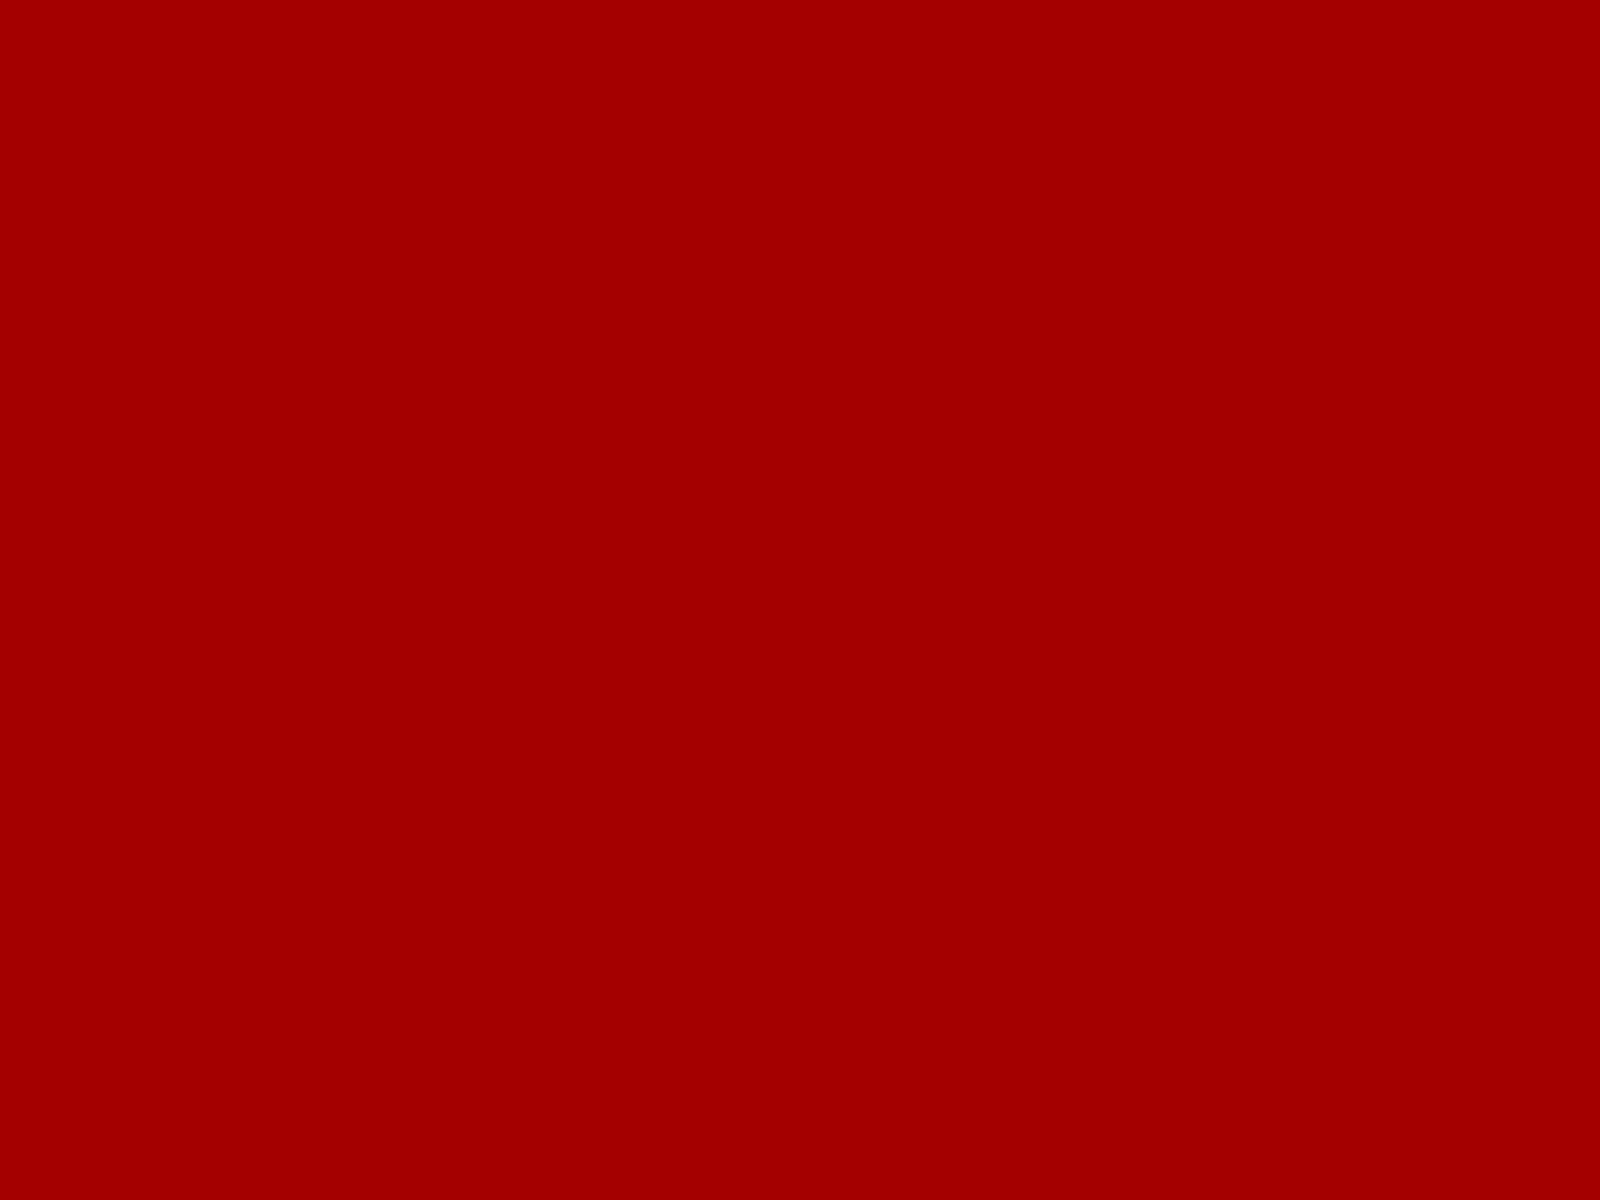 1600x1200 Dark Candy Apple Red Solid Color Background